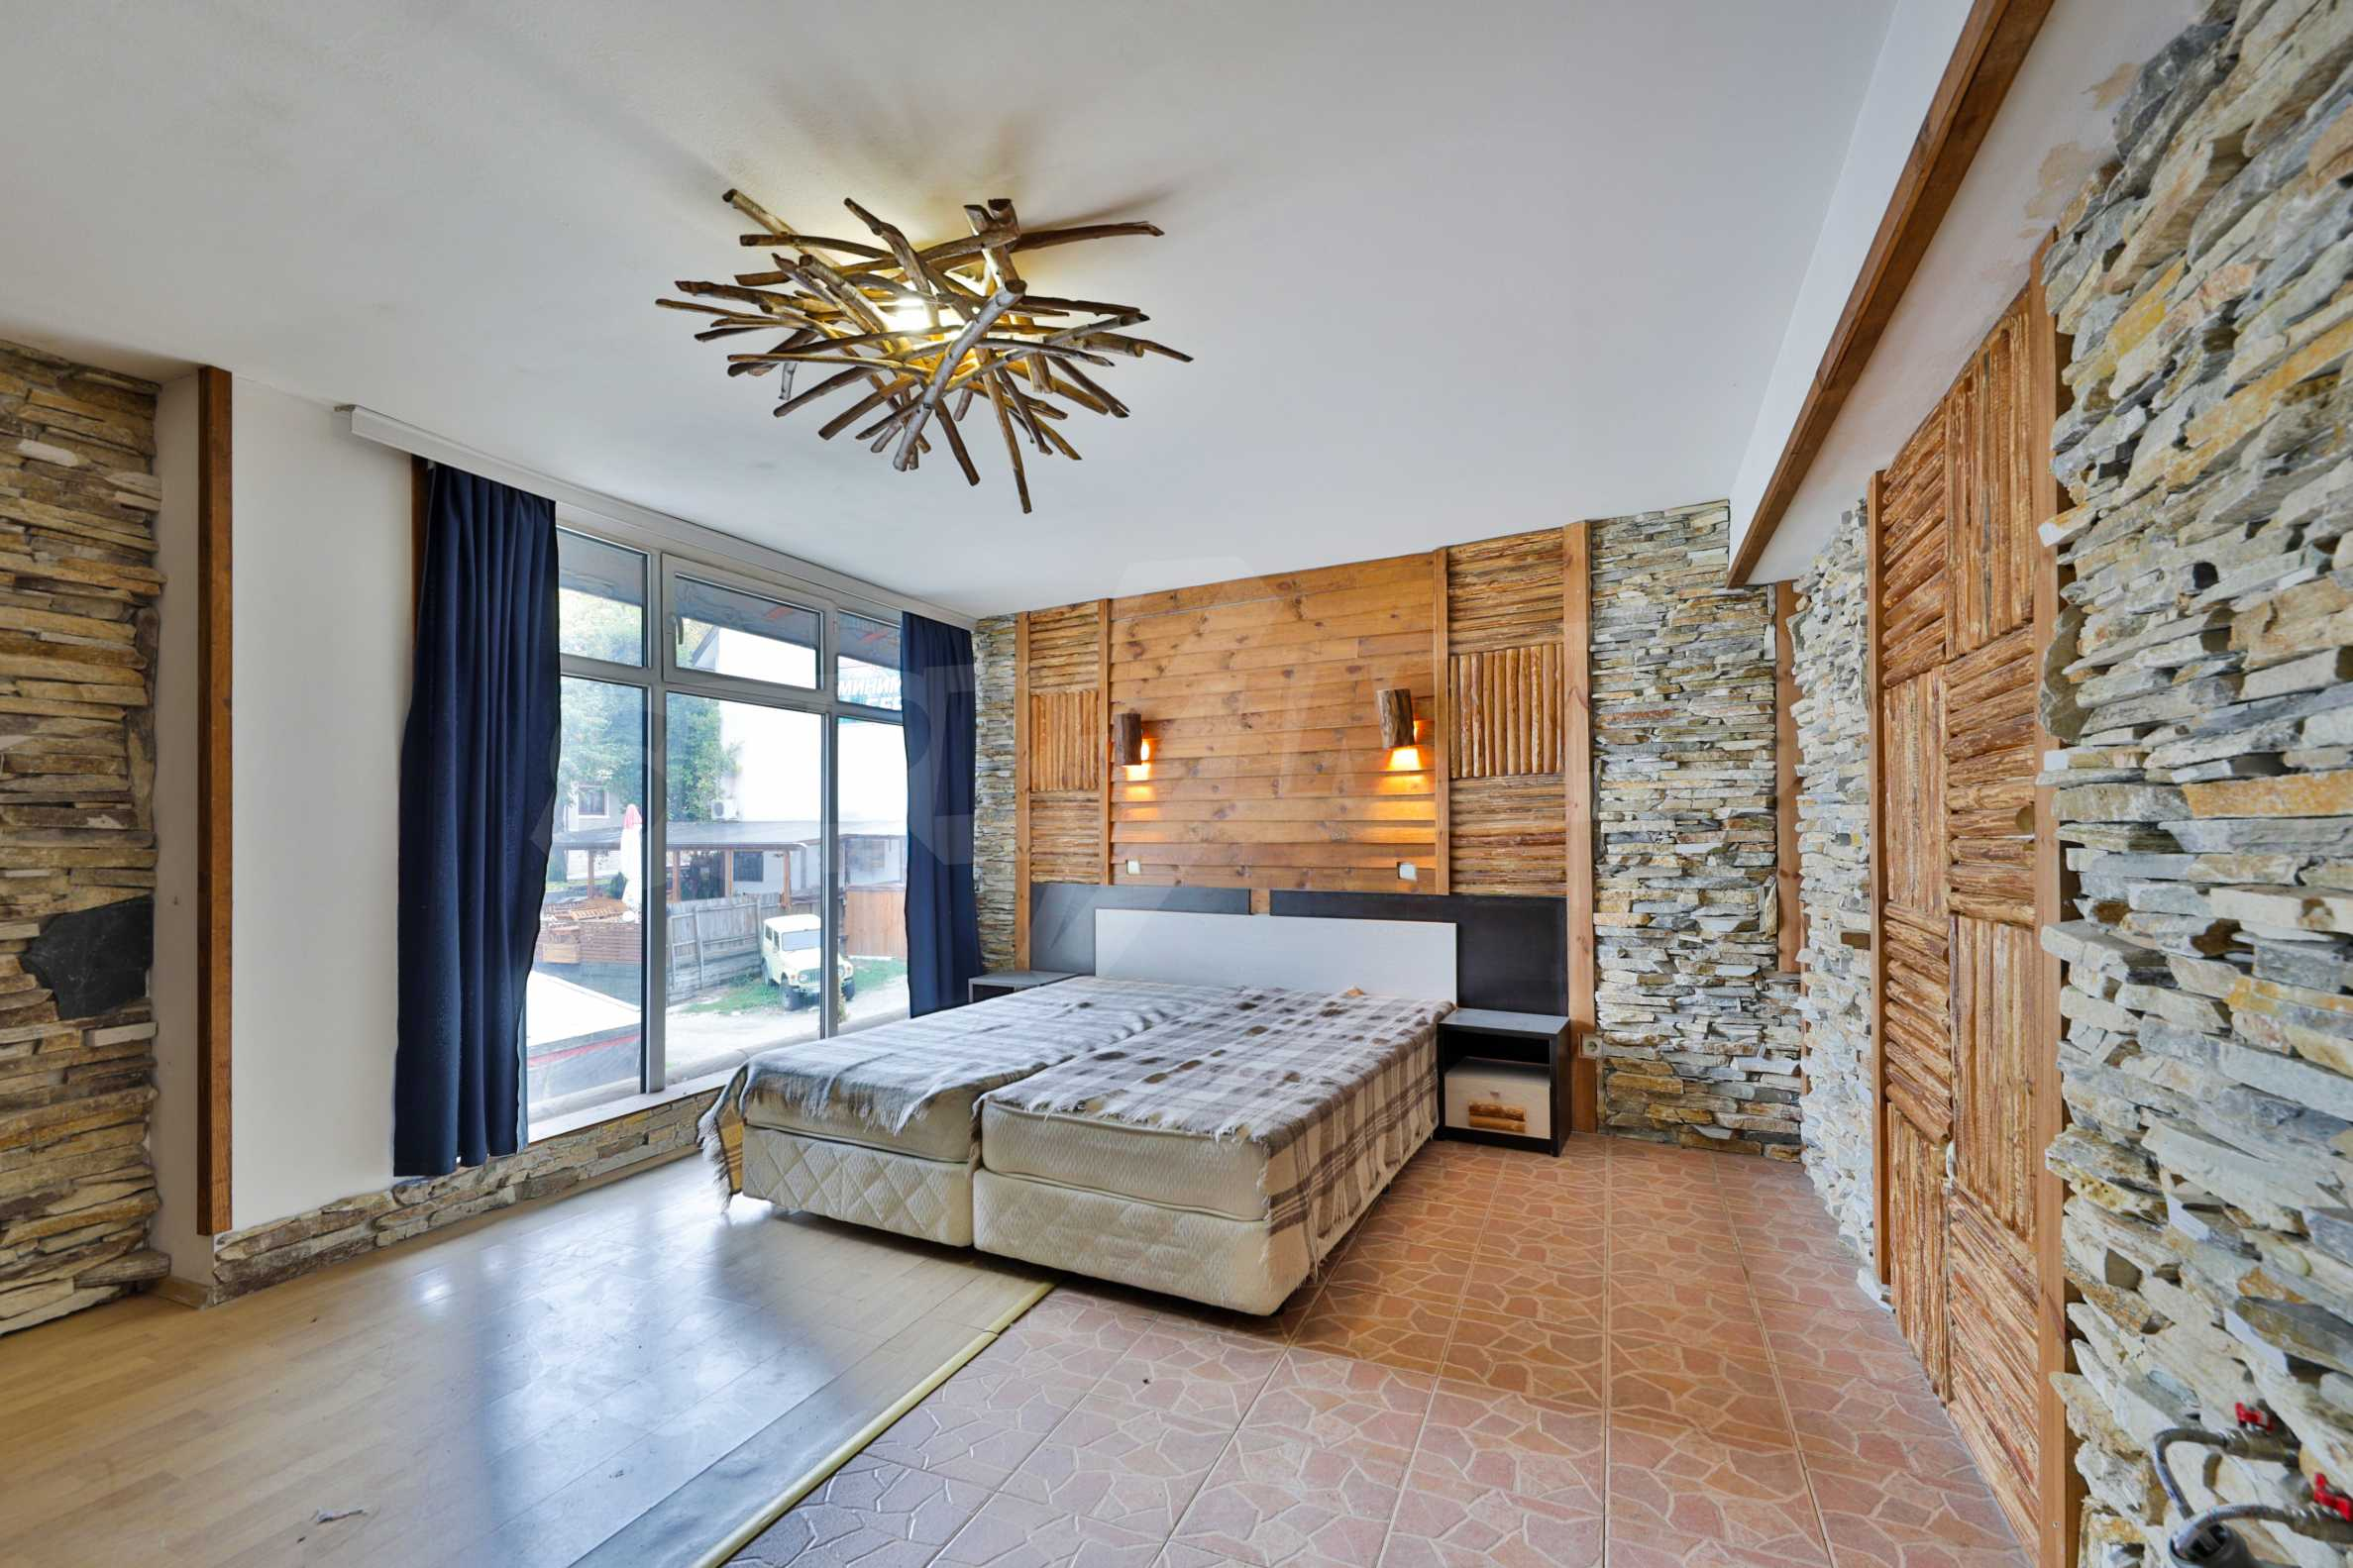 Pirin Apartments: Superb location right in the centre of Bansko